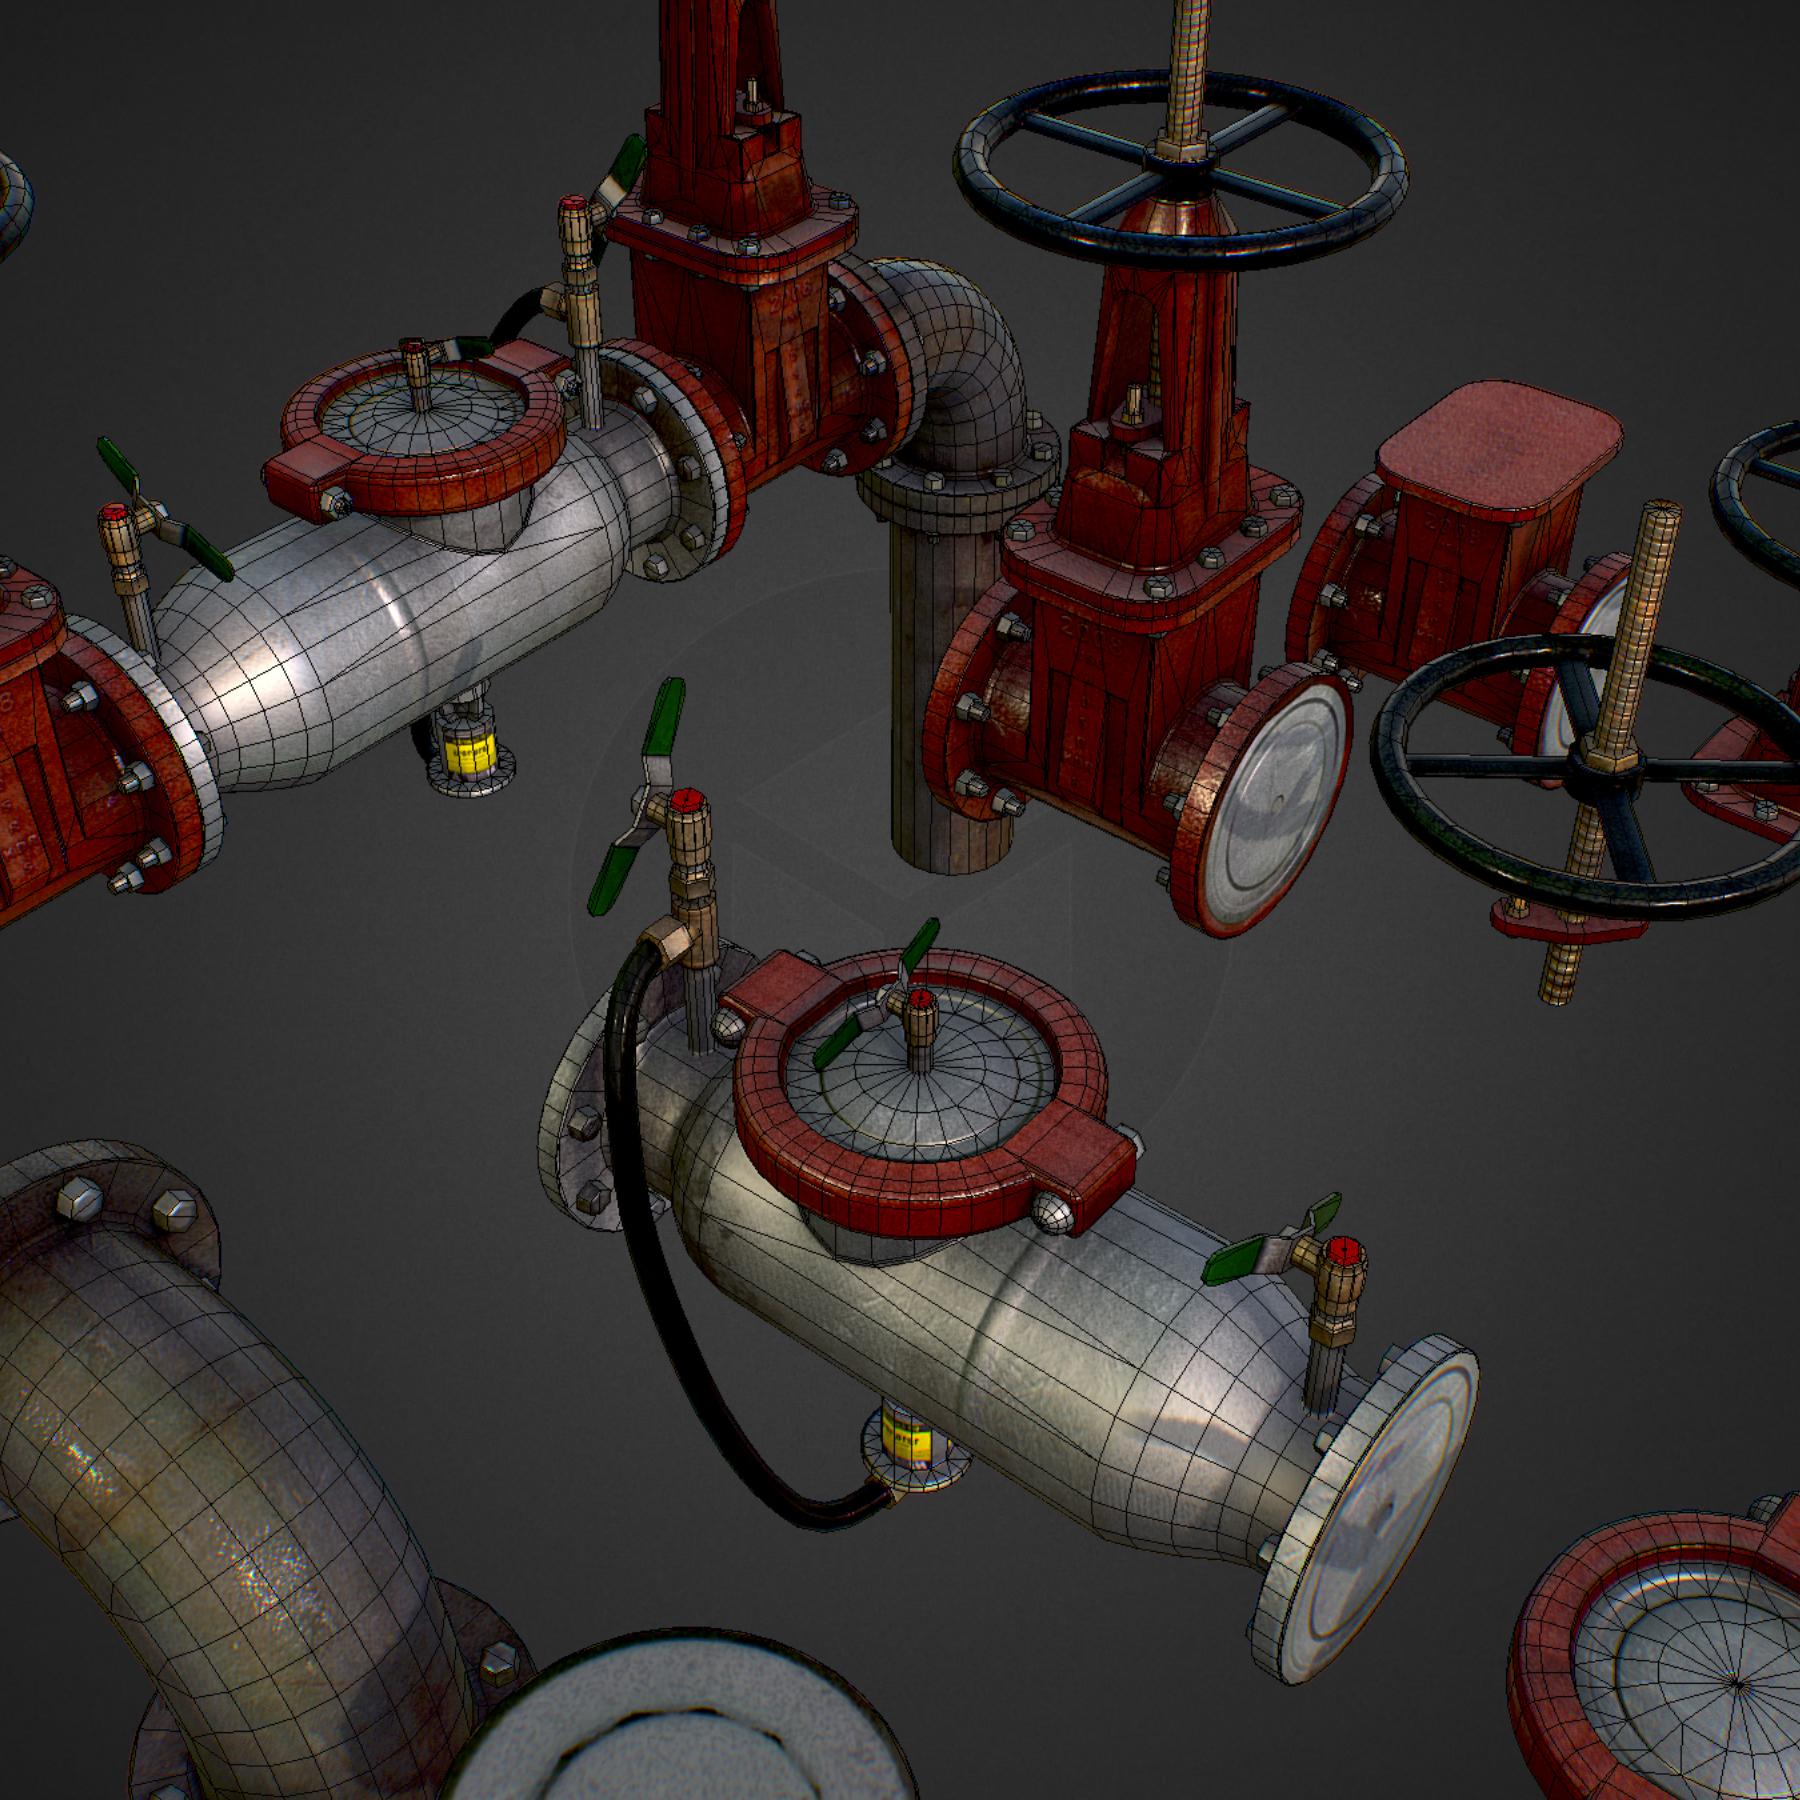 low poly game backflow water pipe constructor 3d model max  fbx ma mb tga targa icb vda vst pix obj 272484